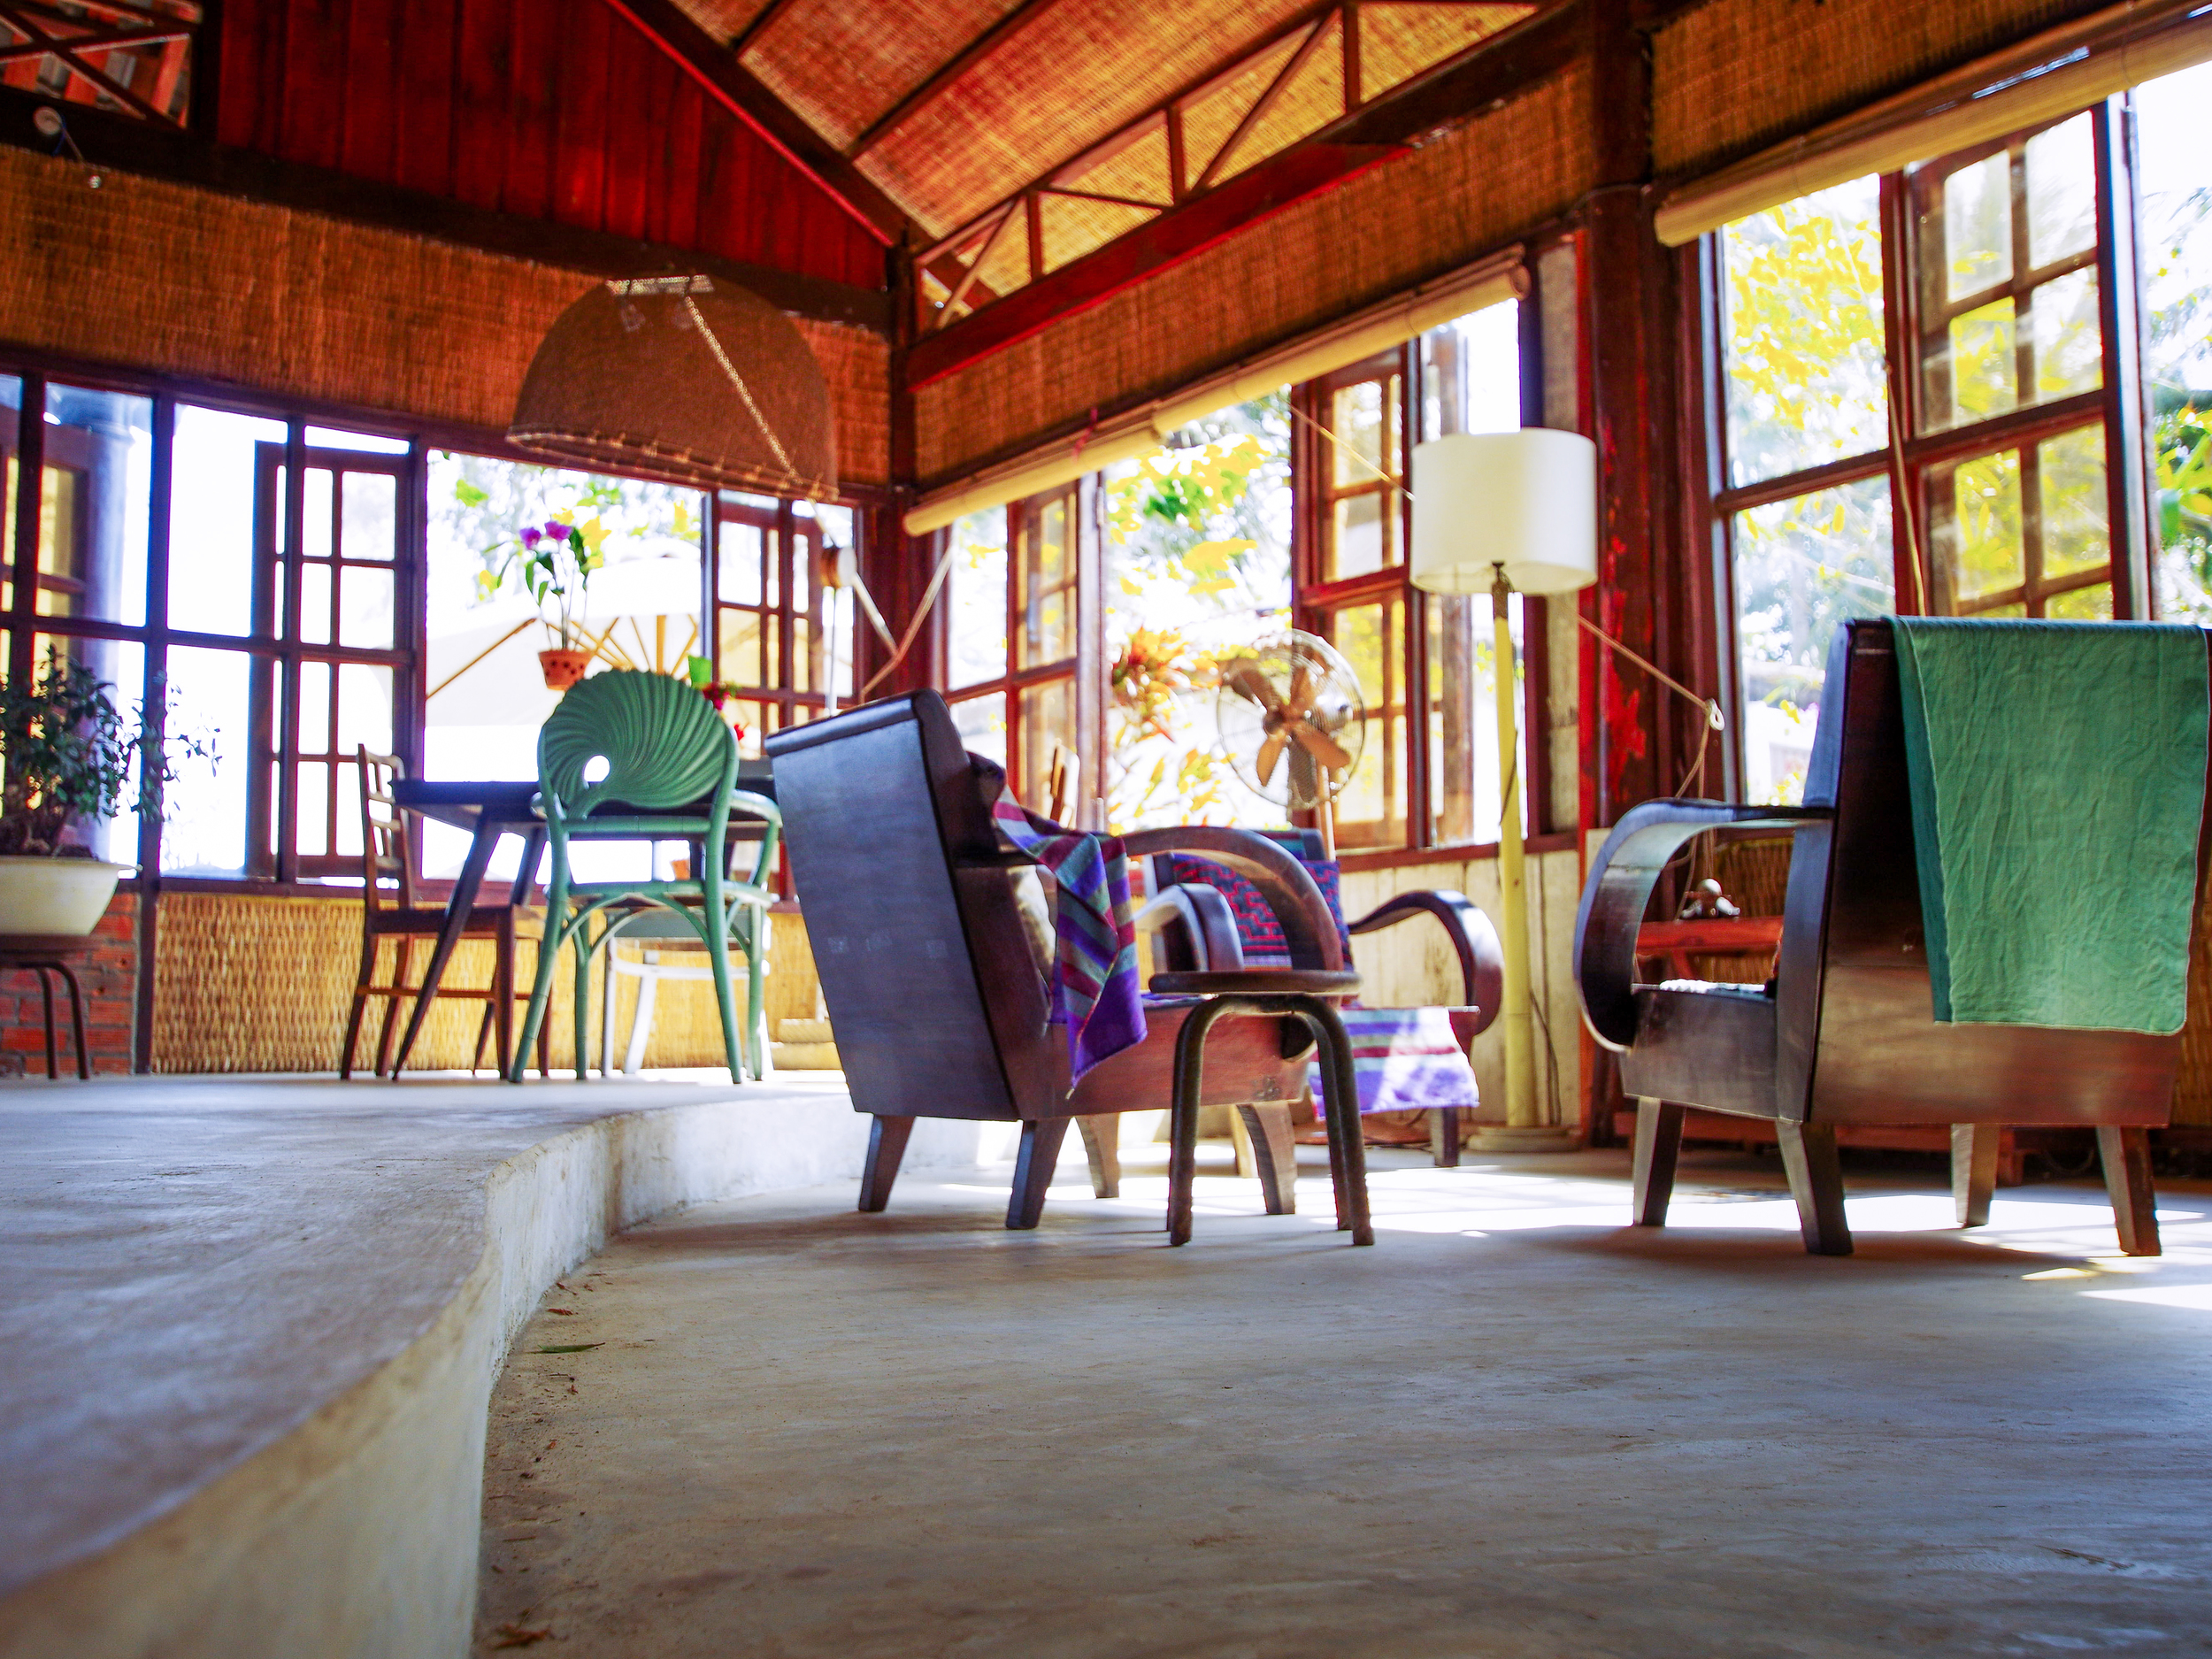 phuo-quoc-bamboo-cottage-83.jpg